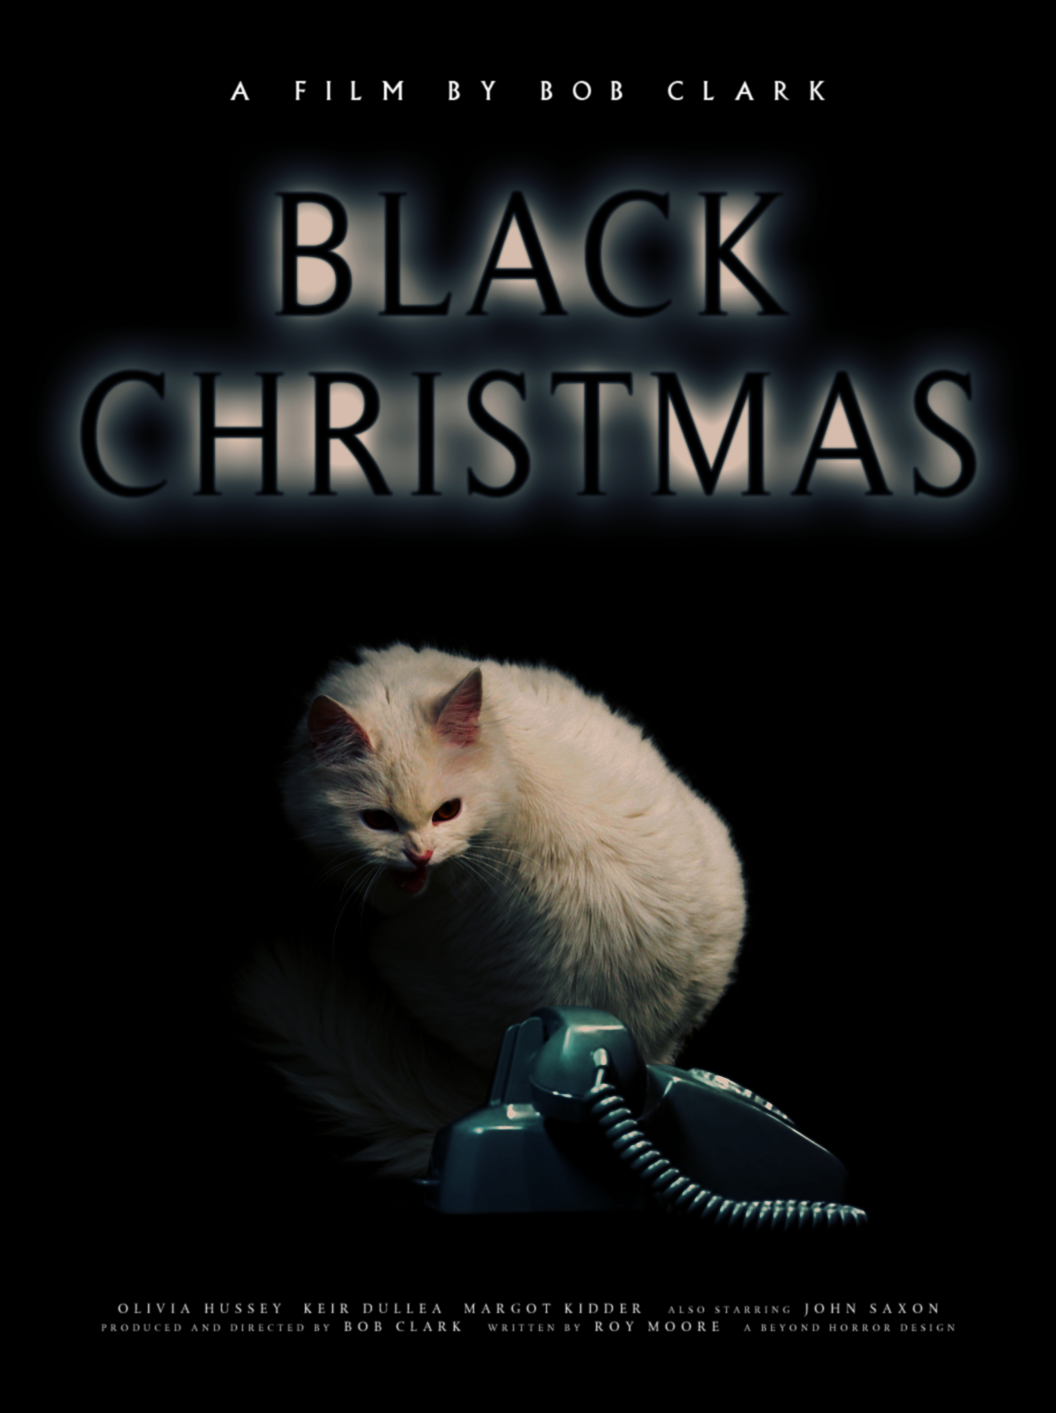 BLACK CHRISTMAS (Bob Clark 1974) (With images) Black